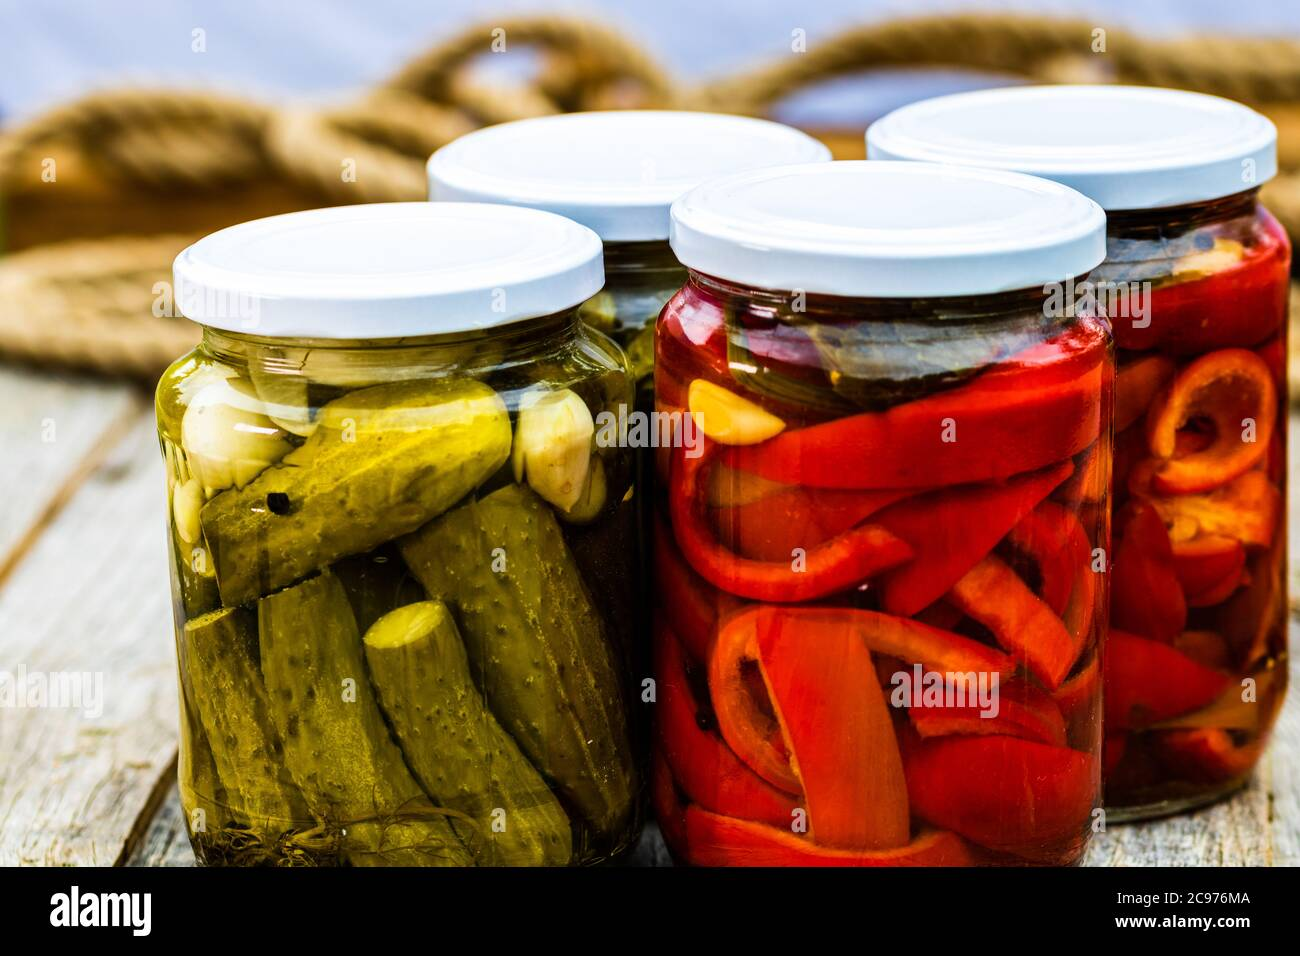 Glass jars with pickled red bell peppers and pickled cucumbers (pickles) isolated. Jars with variety of pickled vegetables. Preserved food concept in Stock Photo